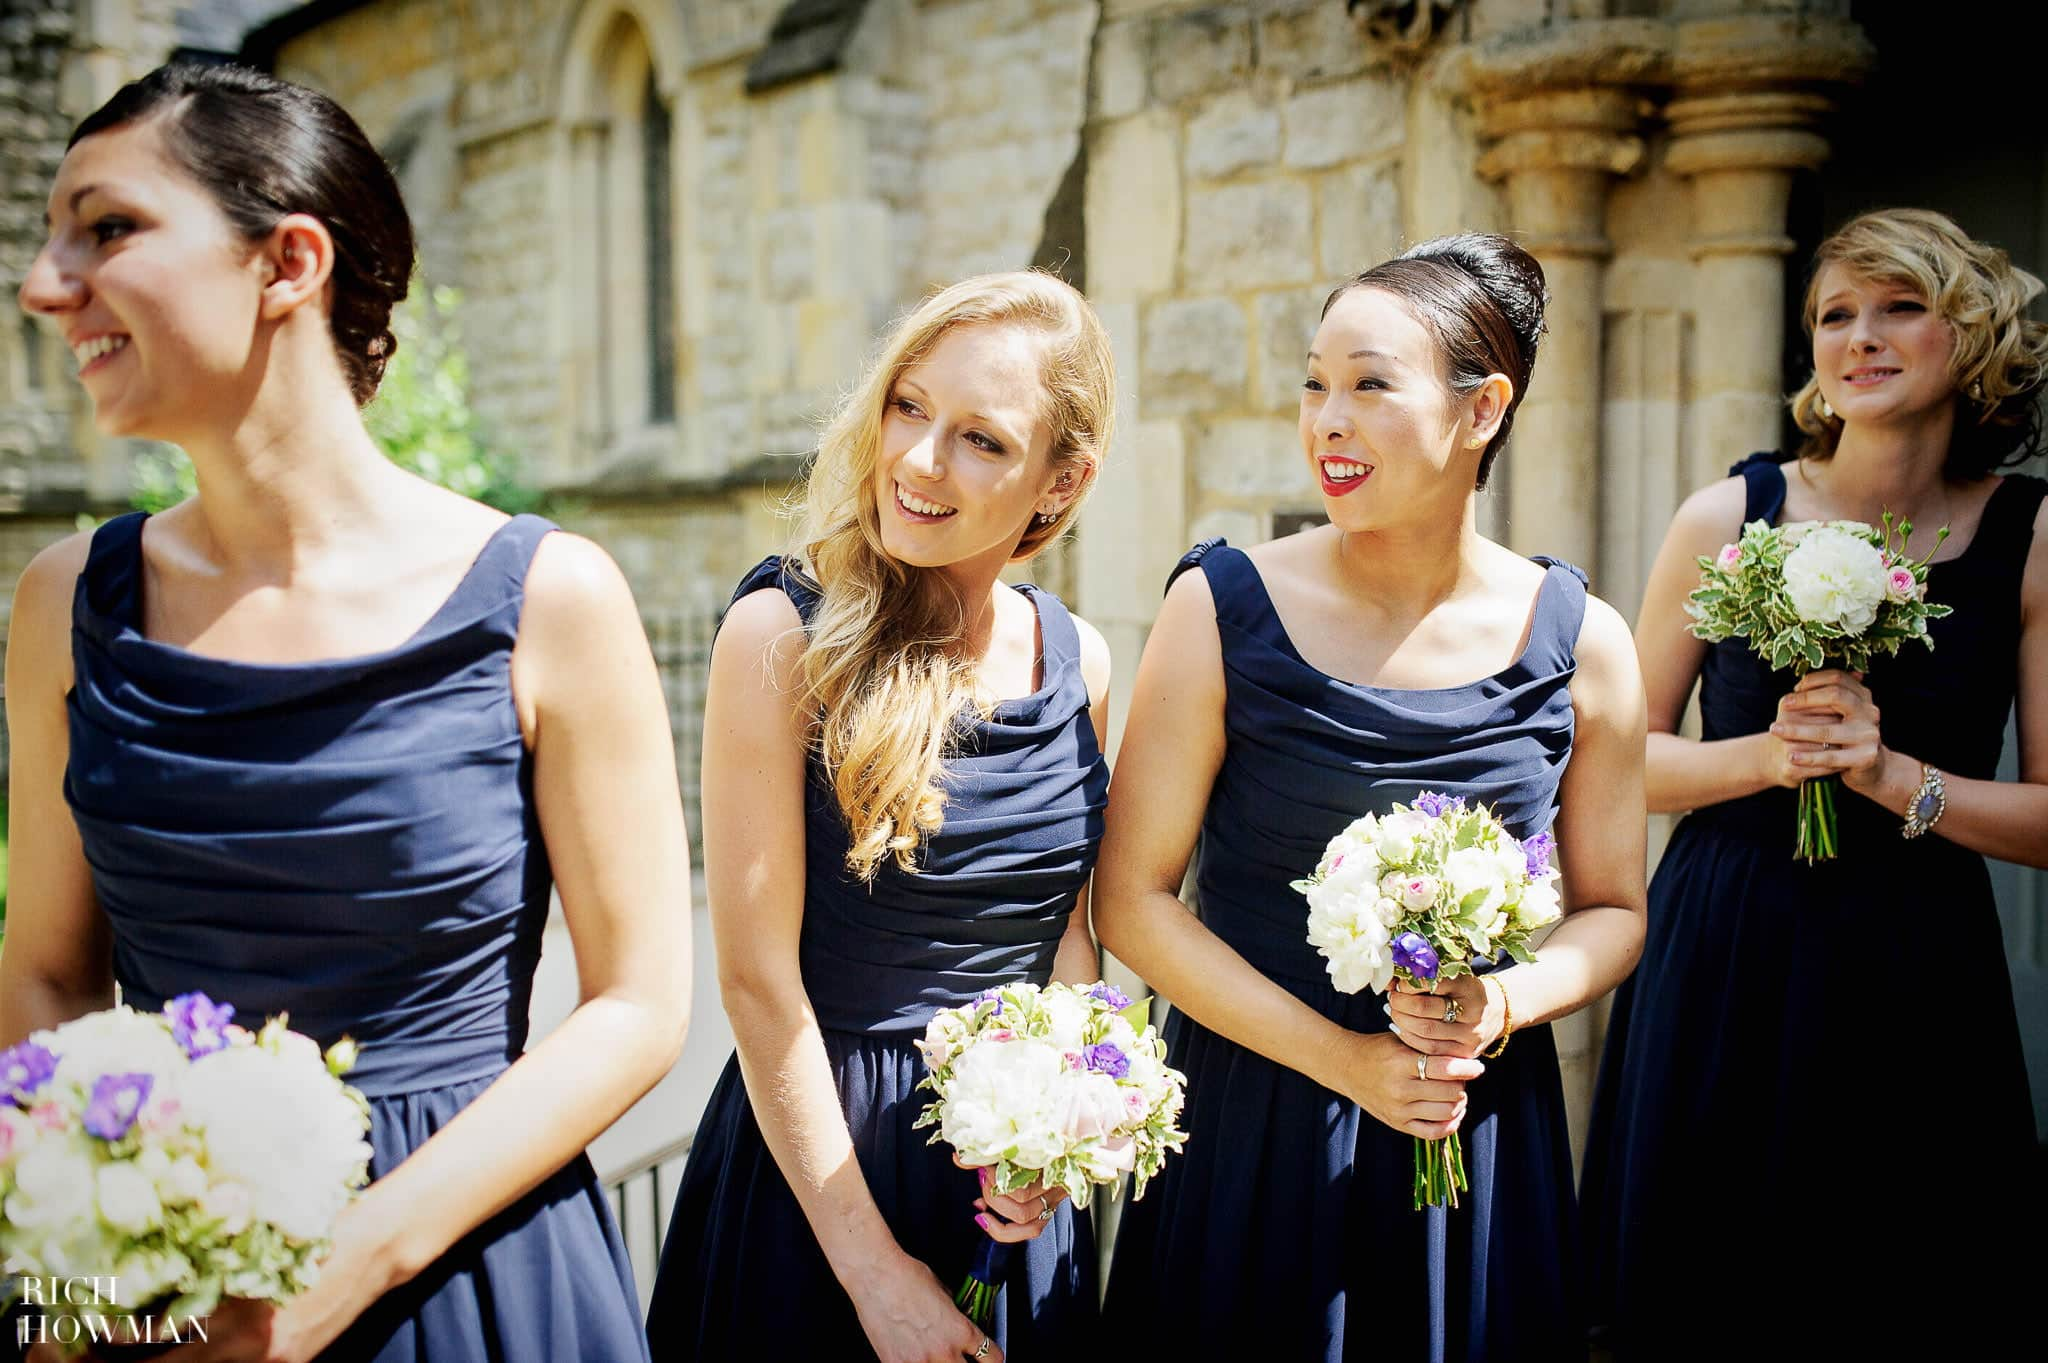 Notting Hill Wedding | Wedding Photographer London - Rich Howman 11